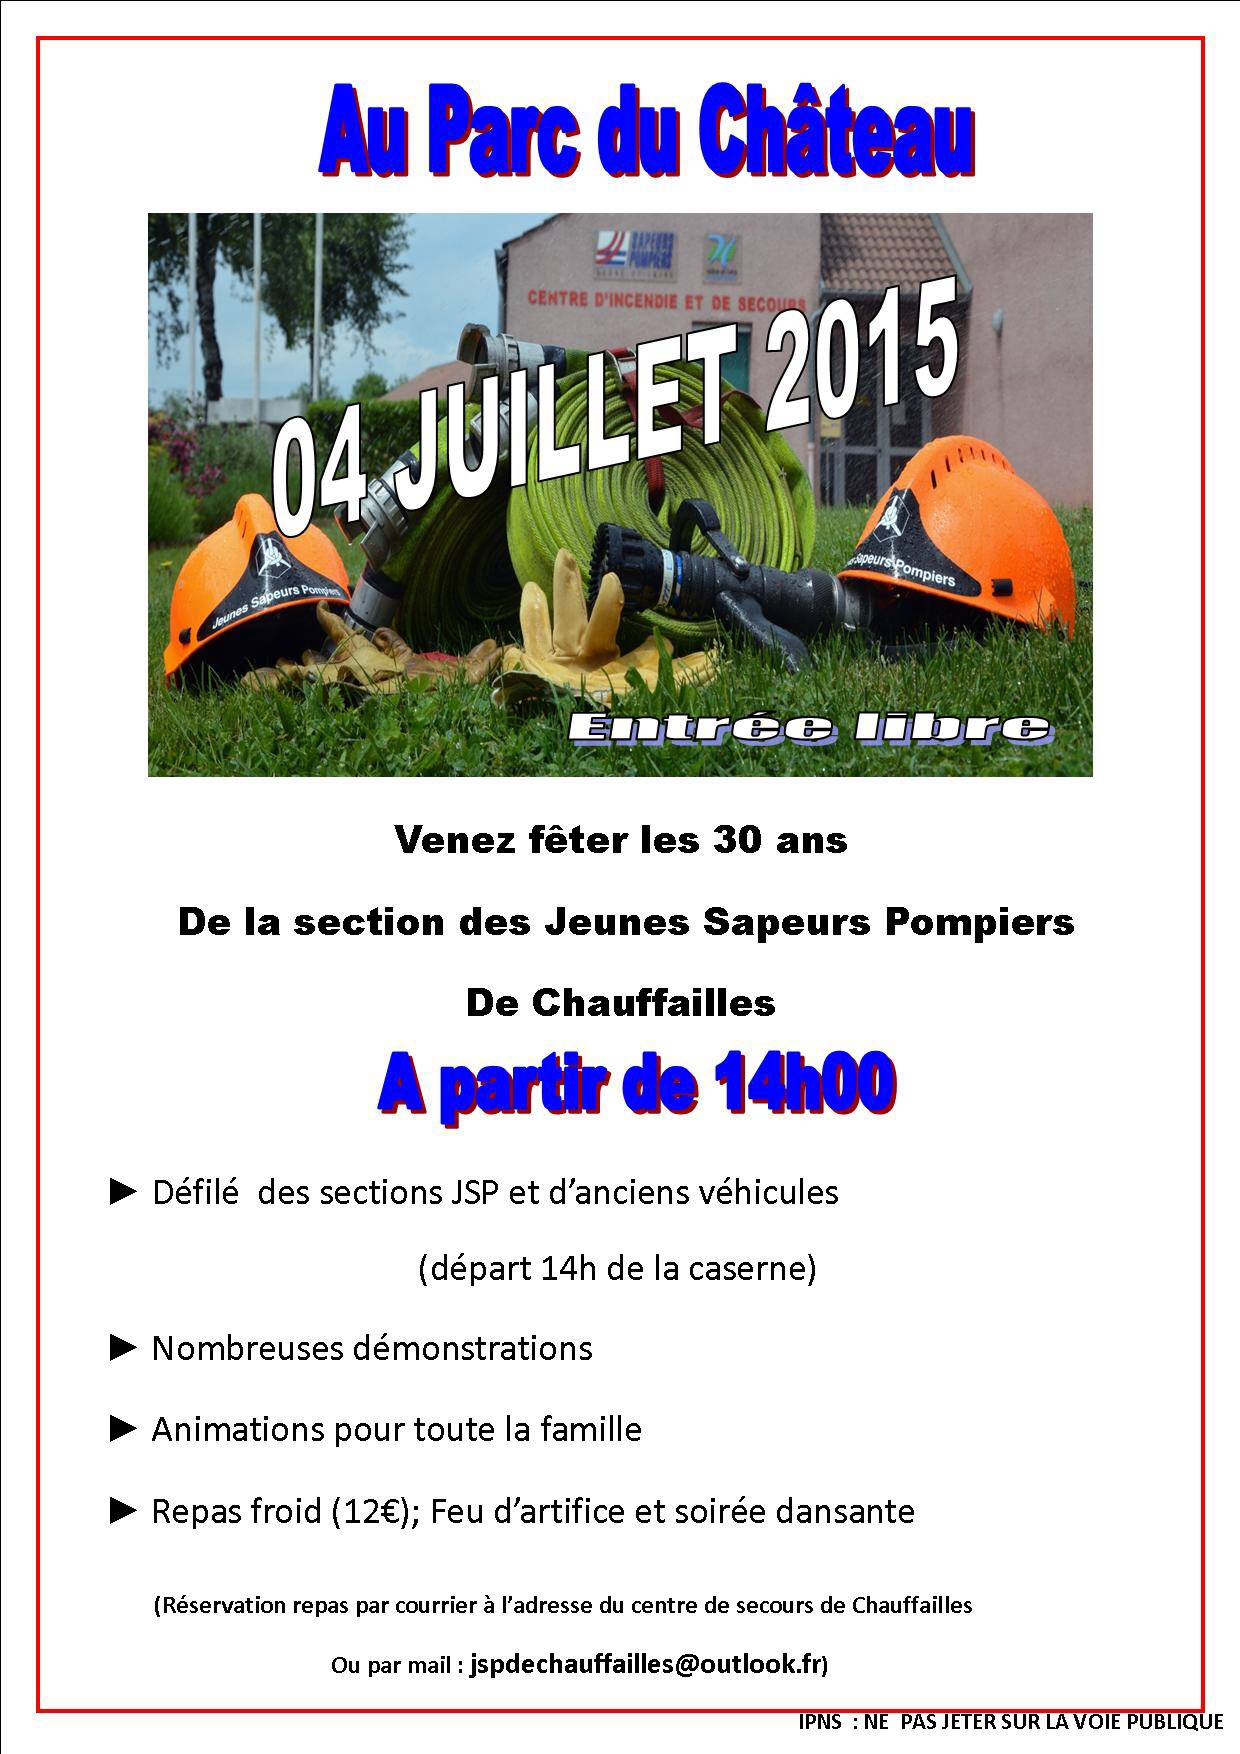 rencontres amicales 71 Champigny-sur-Marne